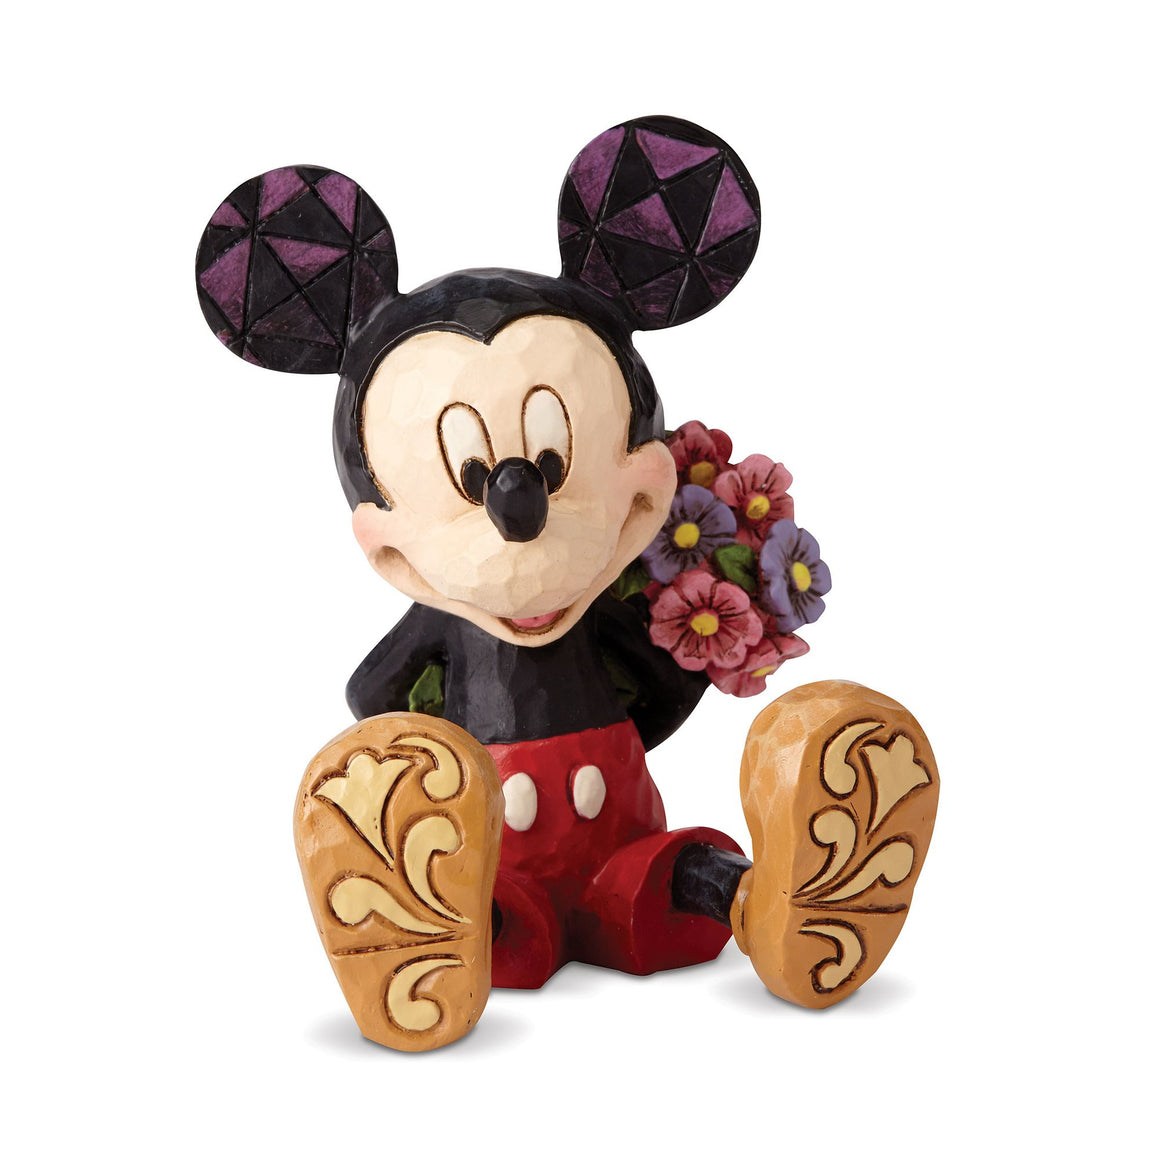 Mickey Mouse with Flowers Mini Figurine - Disney Traditions by Jim Shore